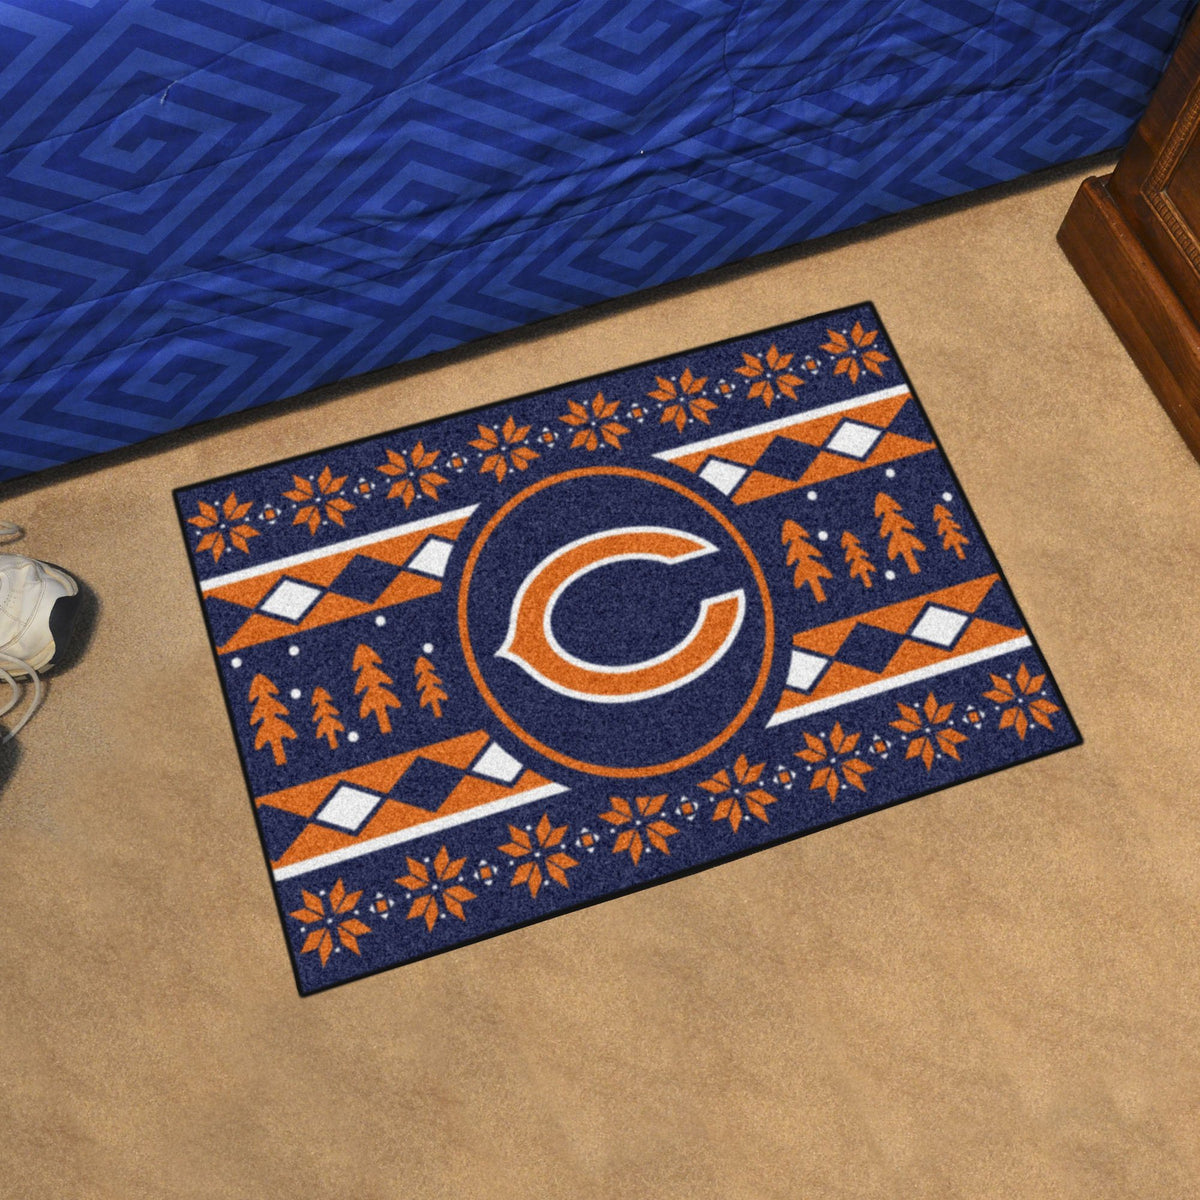 "NFL - Holiday Sweater Starter Mat, 19"" x 30"" NFL Mats, Rectangular Mats, Holiday Sweater Starter Mat, NFL, Home Fan Mats Chicago Bears"